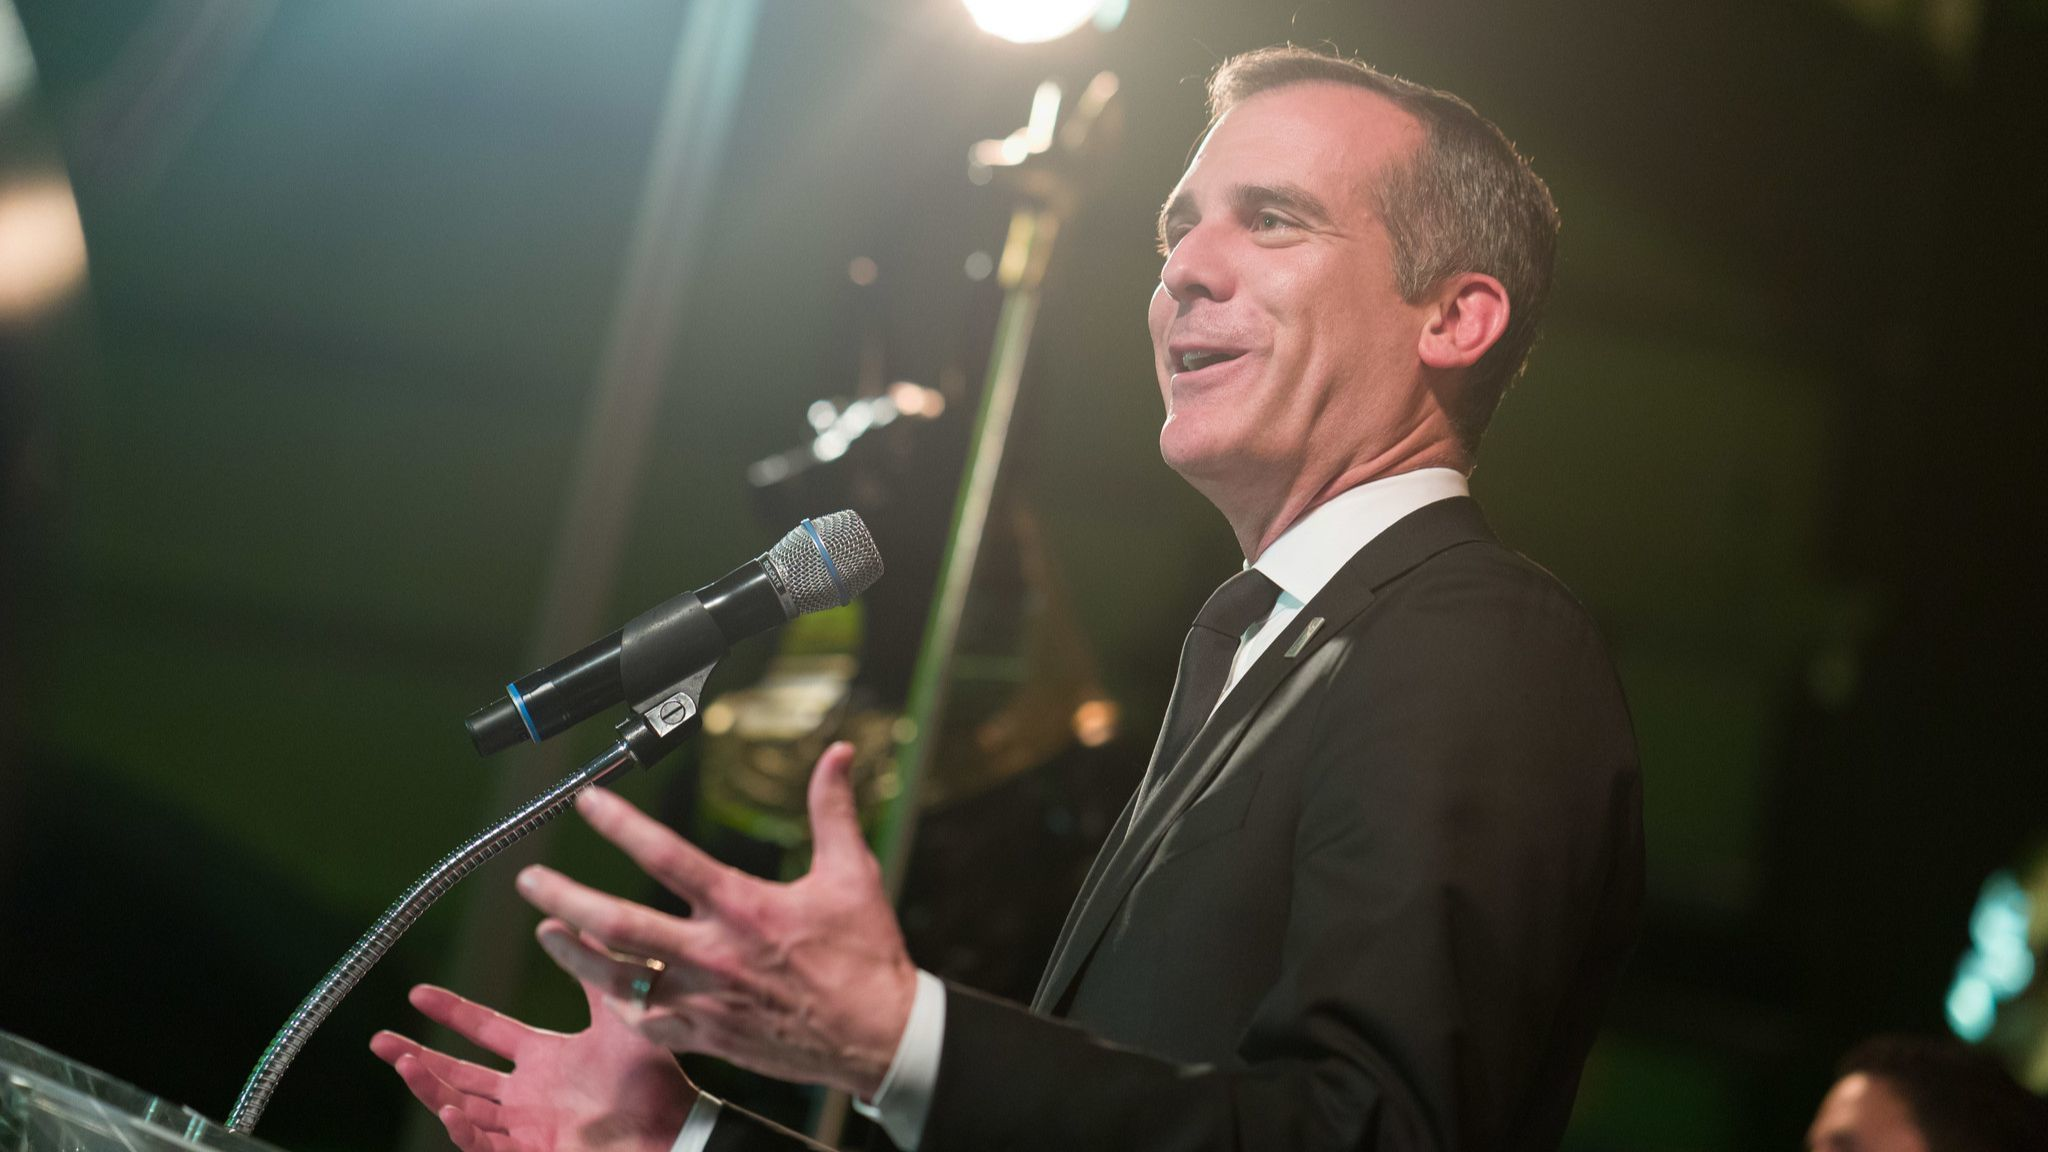 Los Angeles Mayor Eric Garcetti at the podium at the annual Discovery Ball on Friday night.